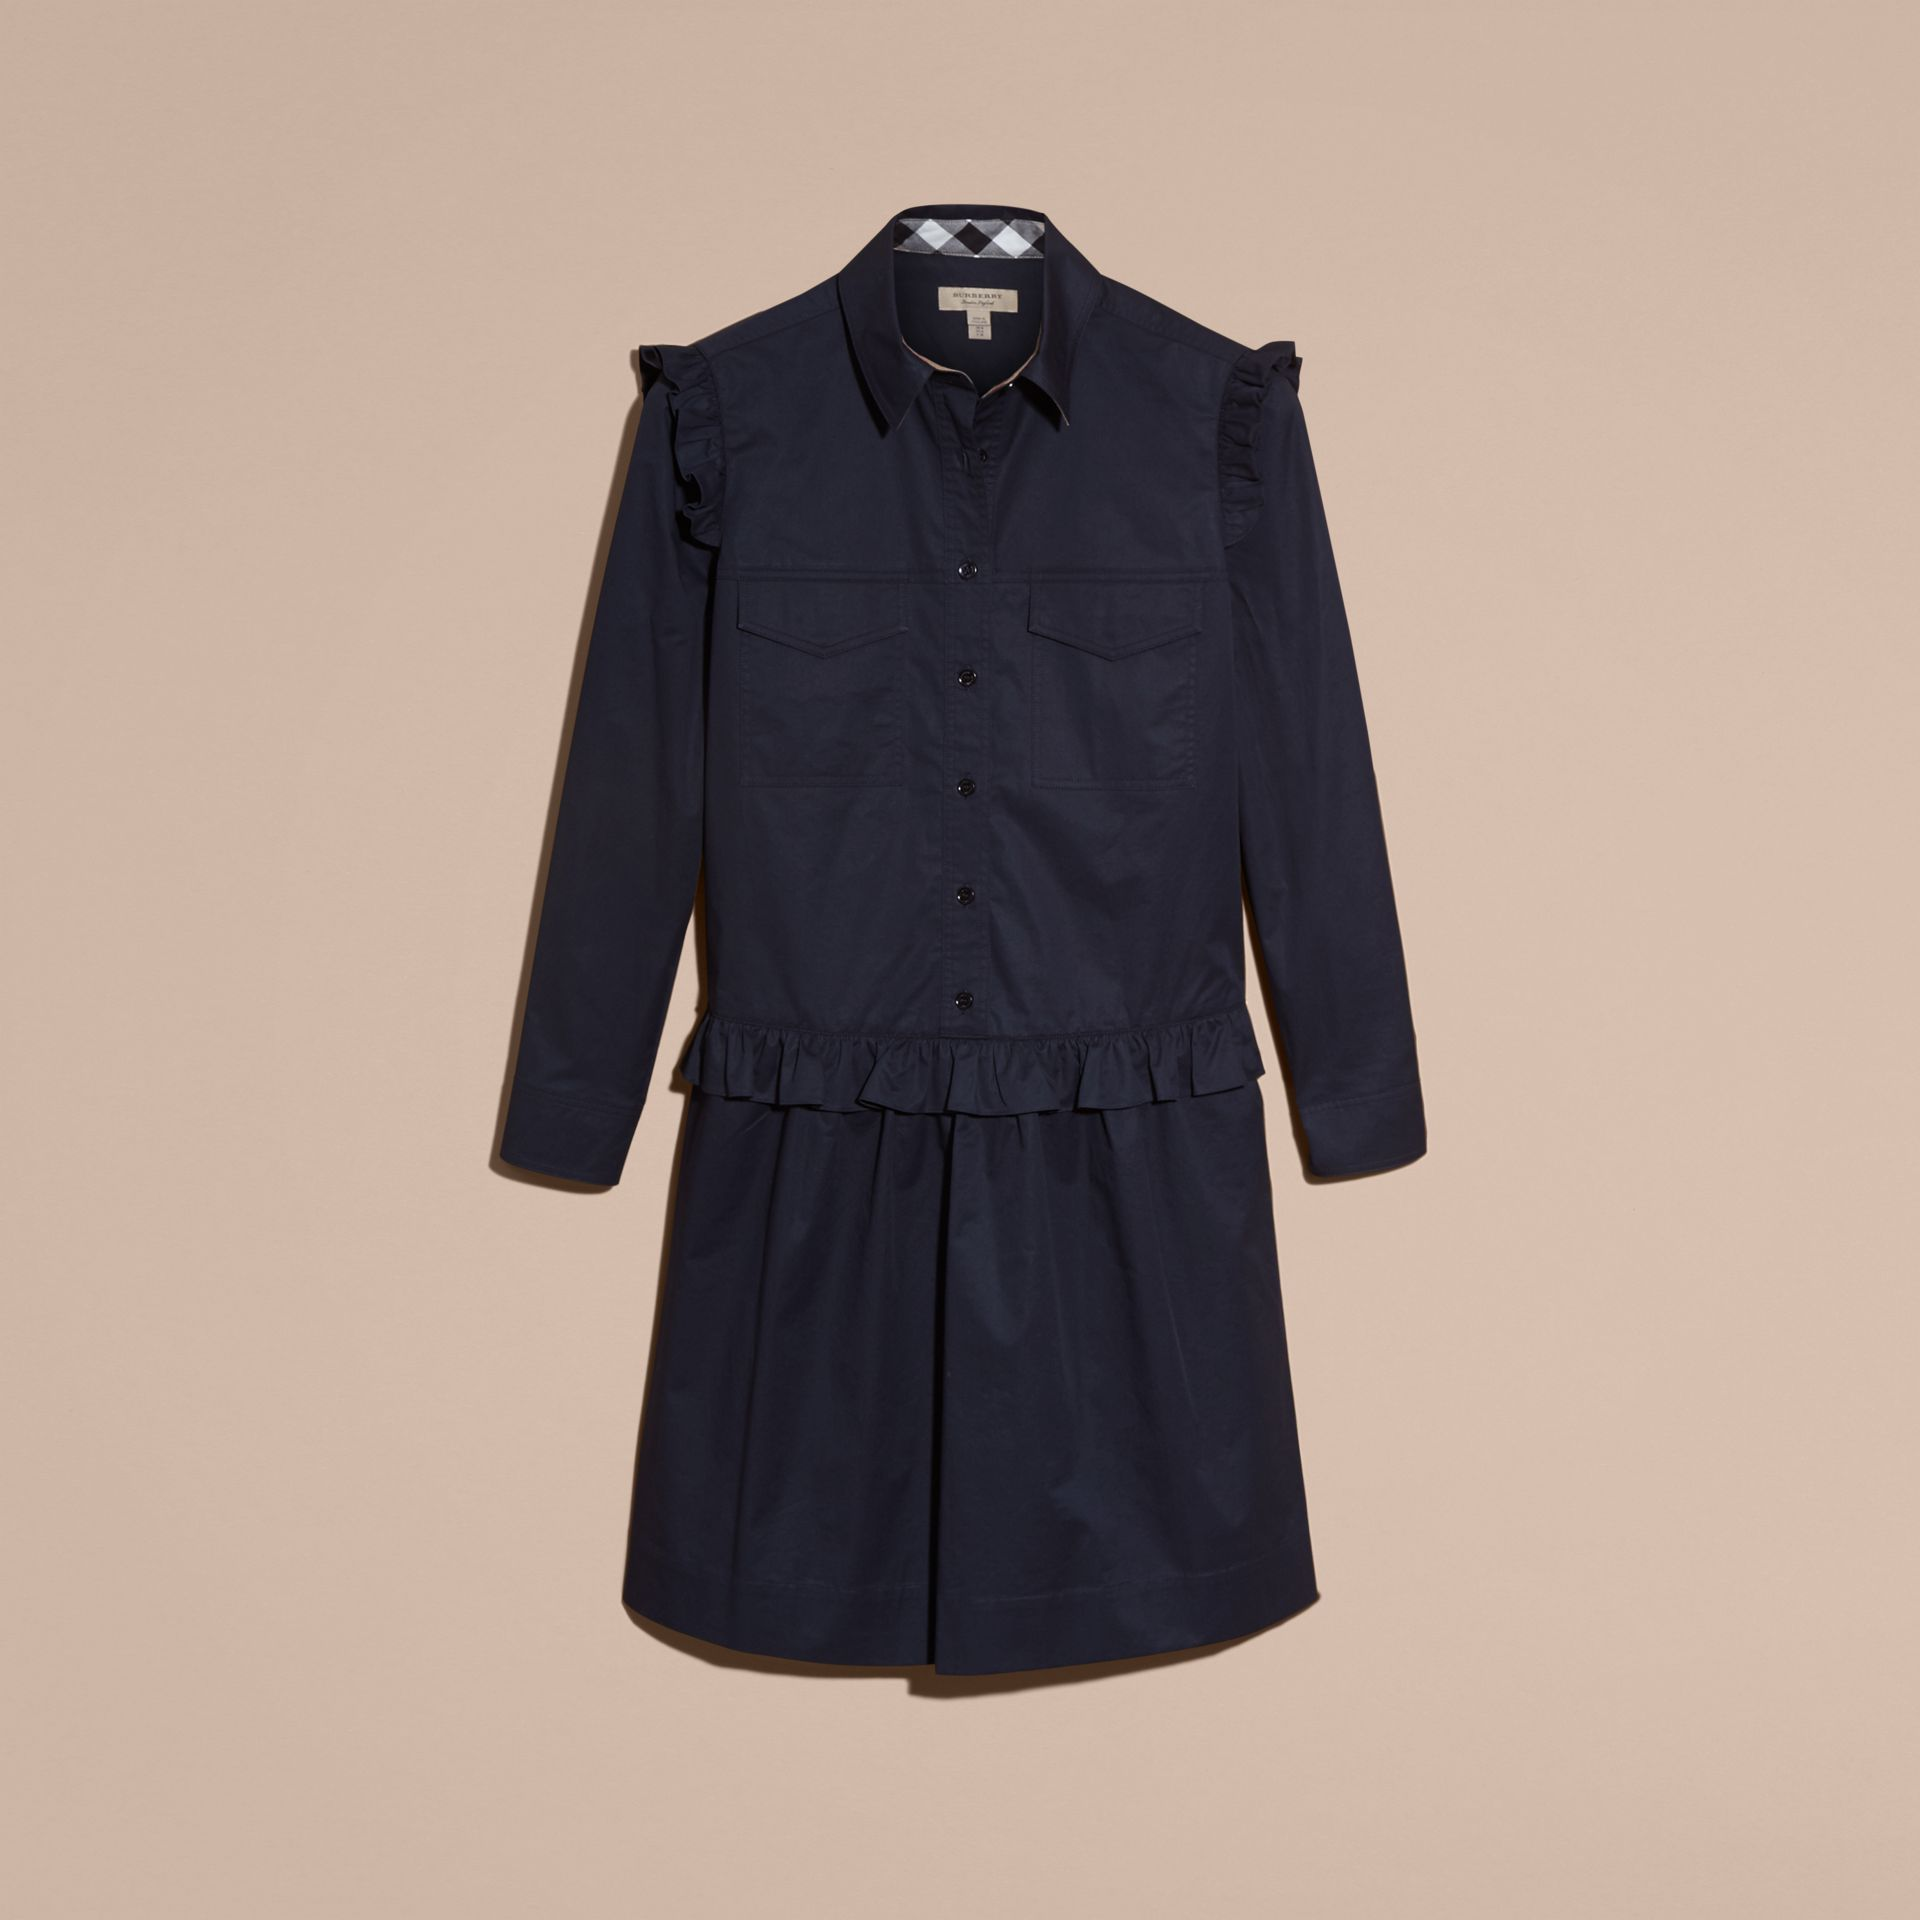 Ruffle and Check Detail Cotton Shirt Dress Navy - gallery image 4